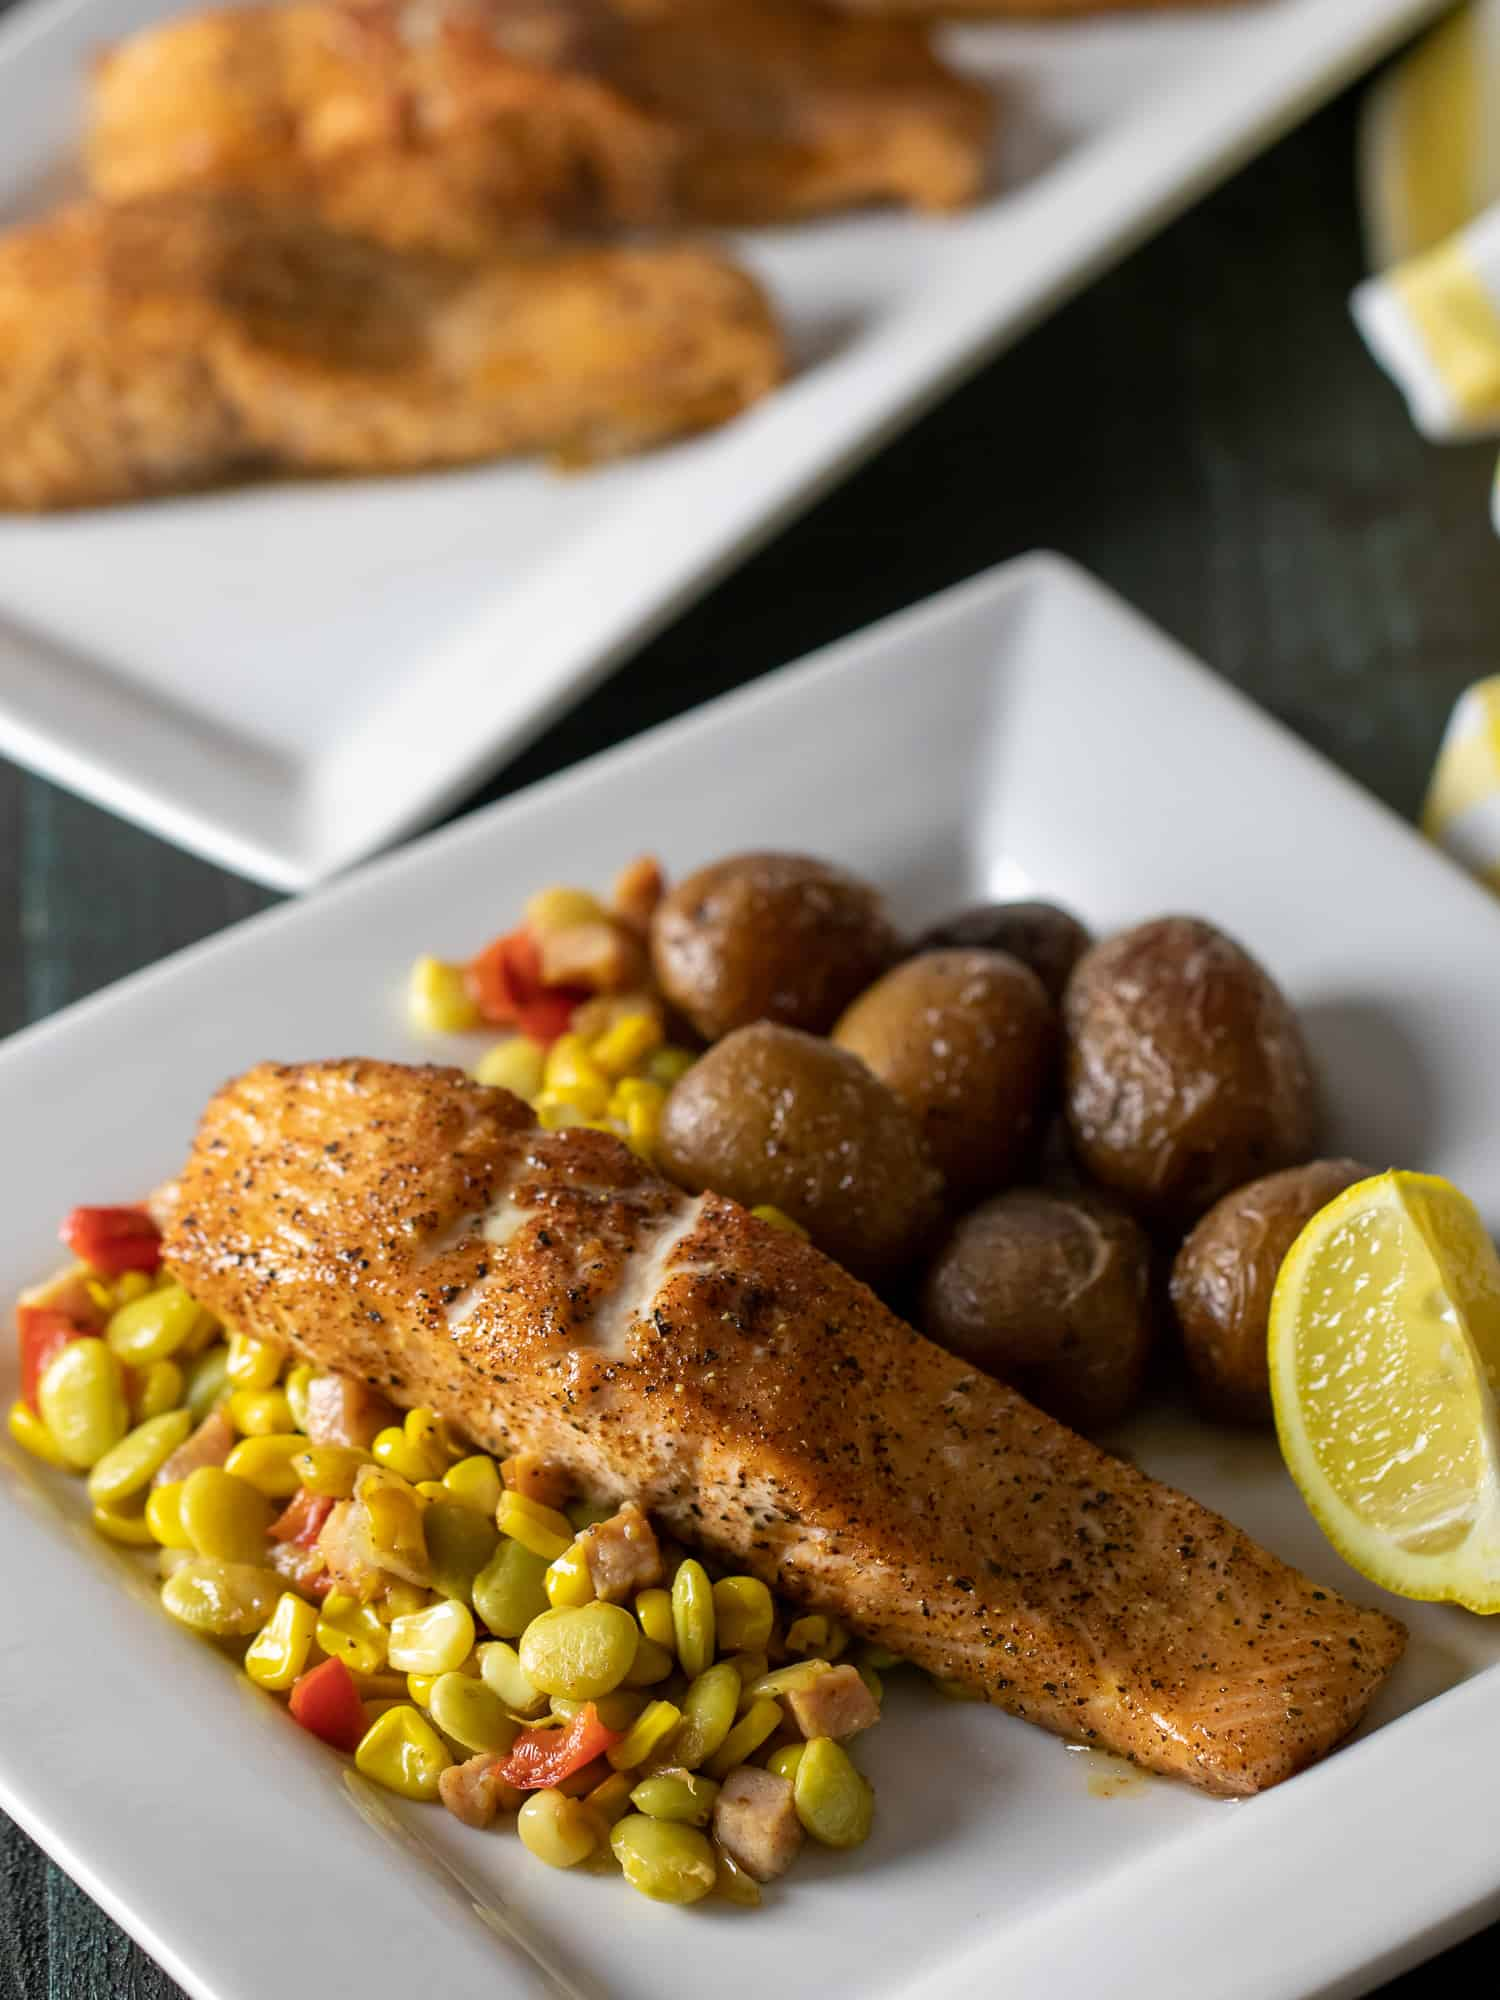 Overhead picture of plate of baked salmon fillets with potatoes, corn and lima beans.